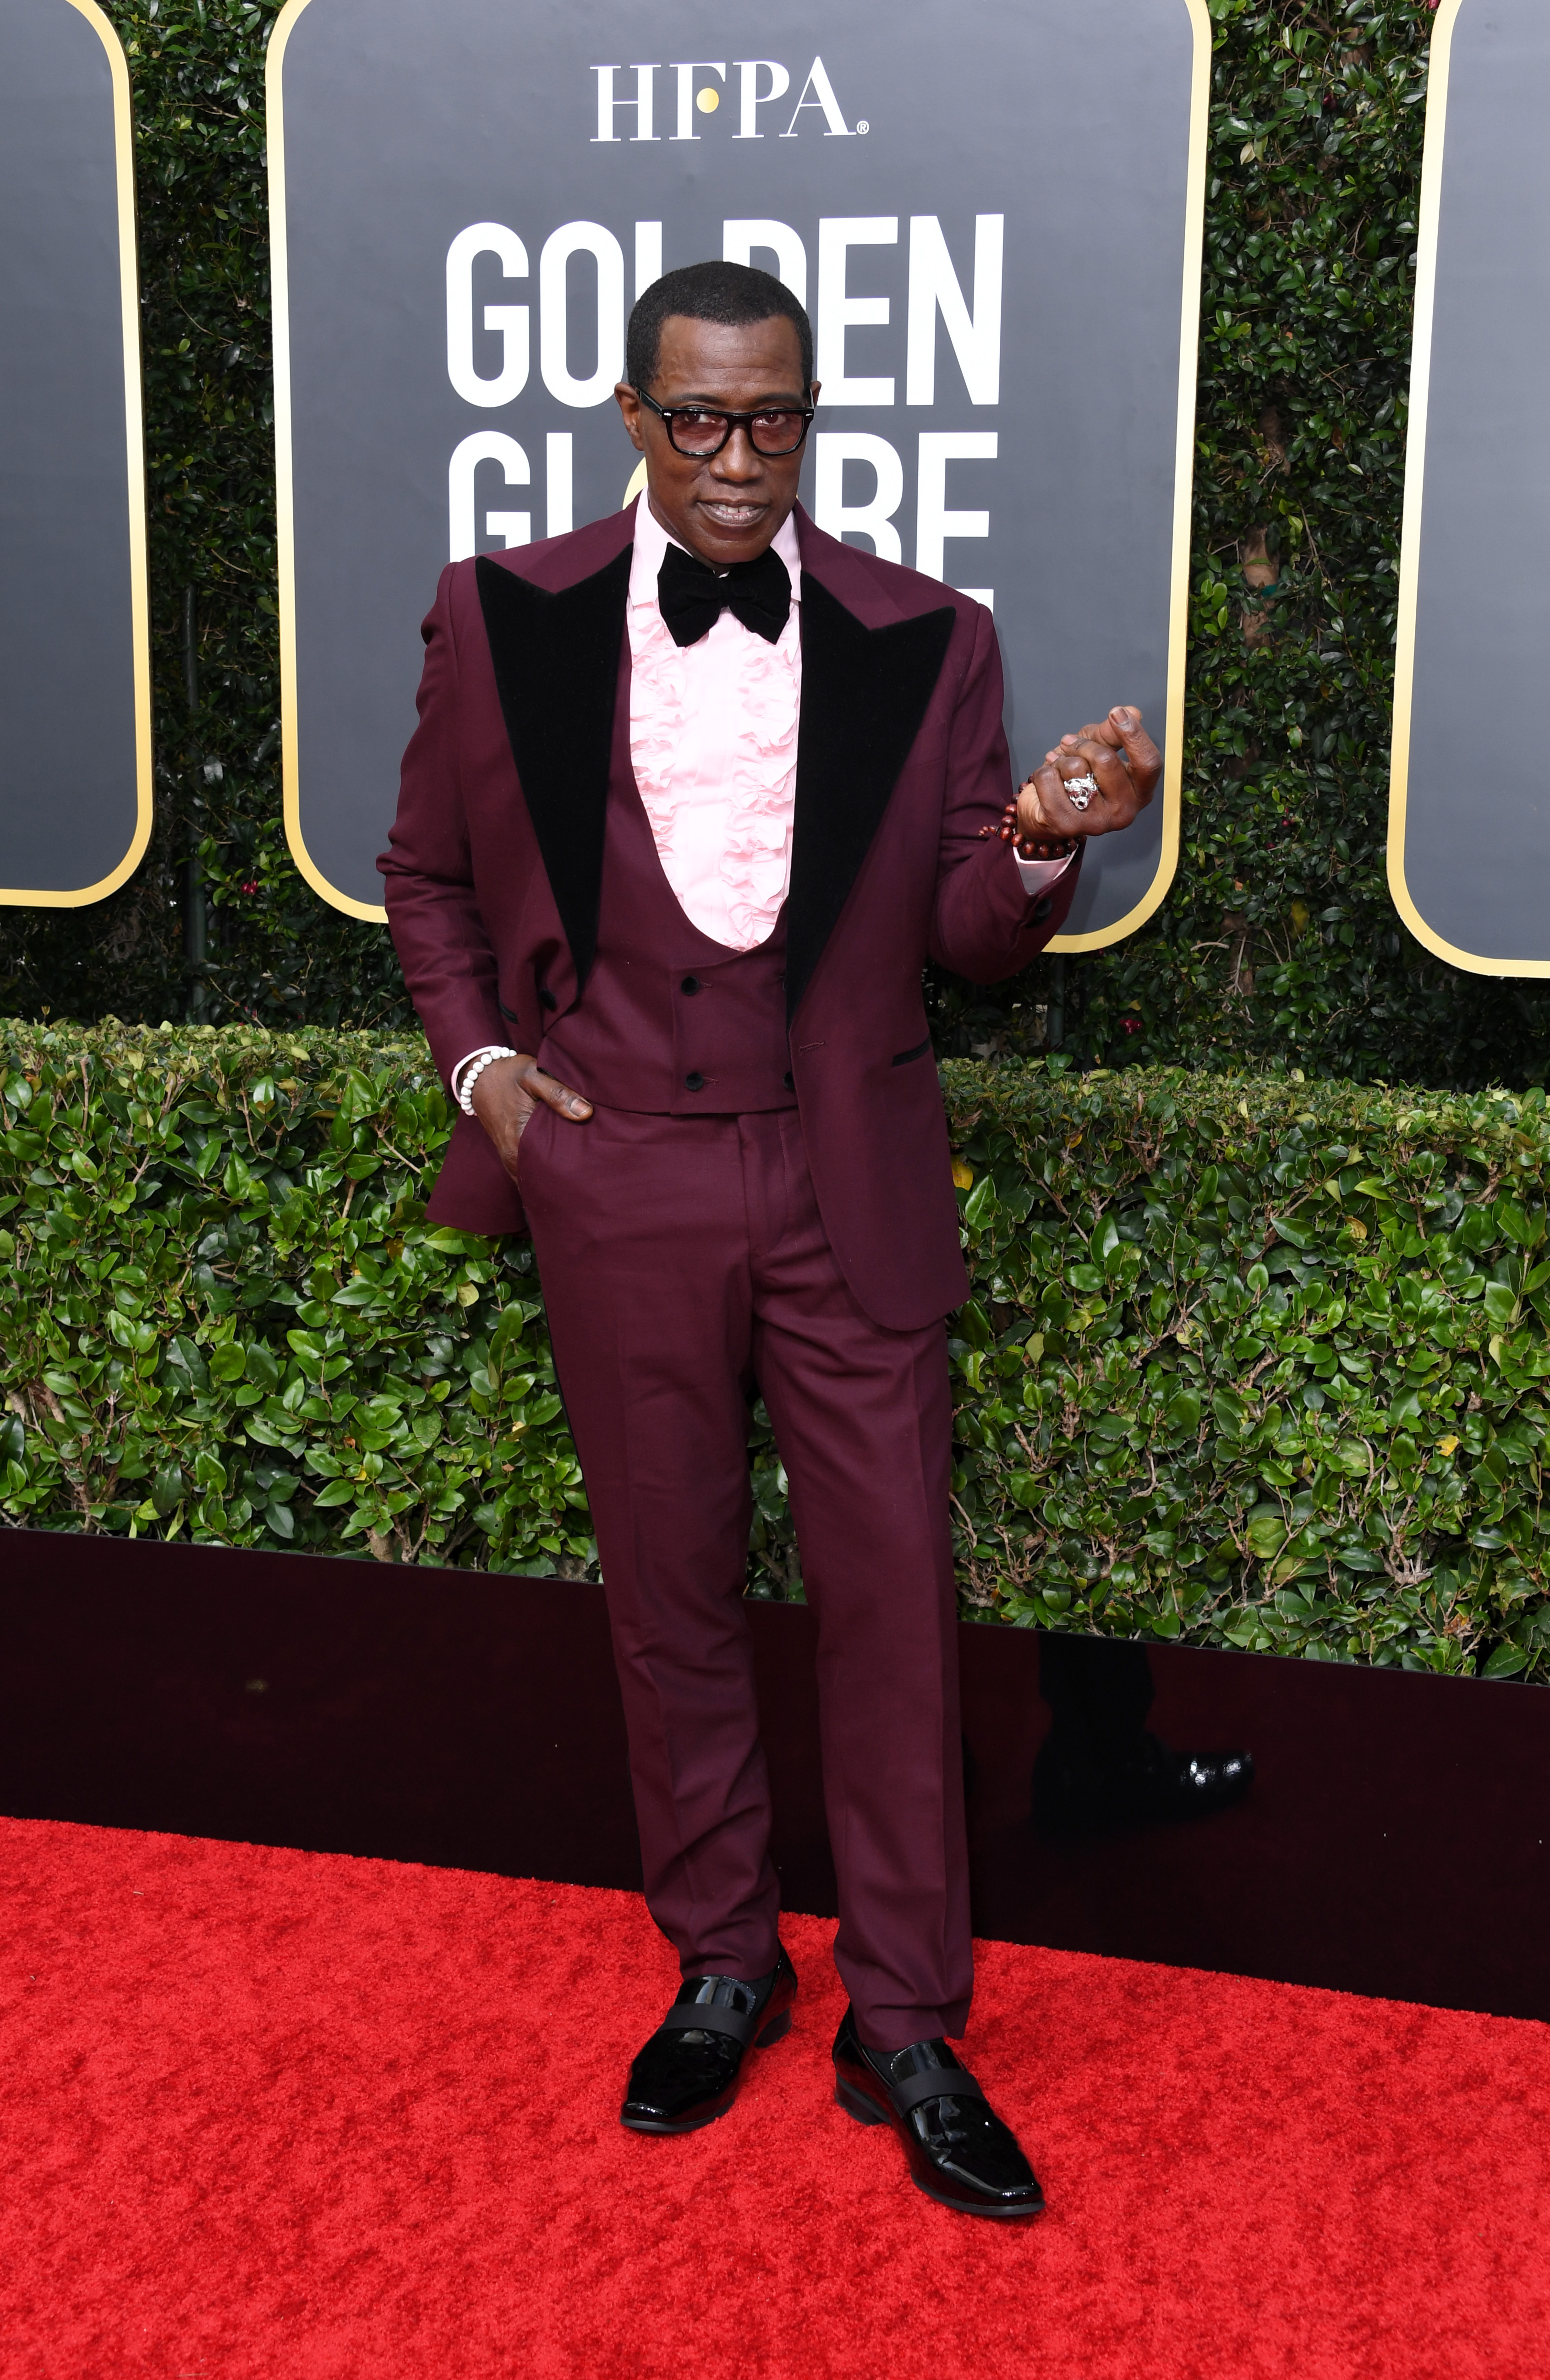 BEVERLY HILLS, CALIFORNIA - JANUARY 05: Wesley Snipes attends the 77th Annual Golden Globe Awards at The Beverly Hilton Hotel on January 05, 2020 in Beverly Hills, California. (Photo by Jon Kopaloff/Getty Images)